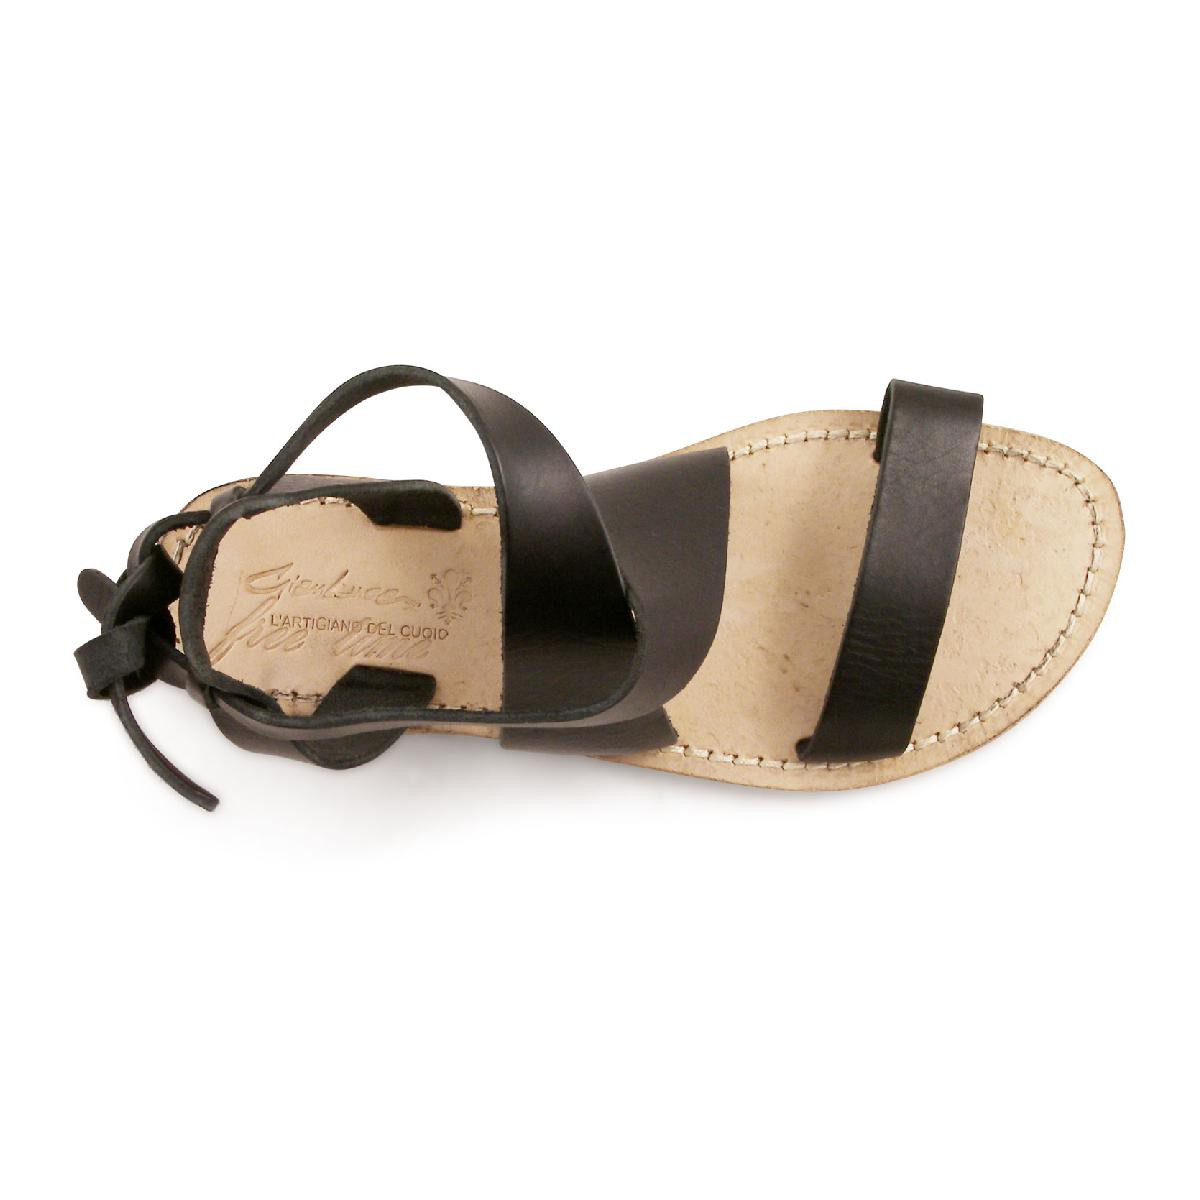 Shop our selection of Sandals for Women's. Shop Sandals clearance and Sandals on sale. Free Shipping and Free Returns*.